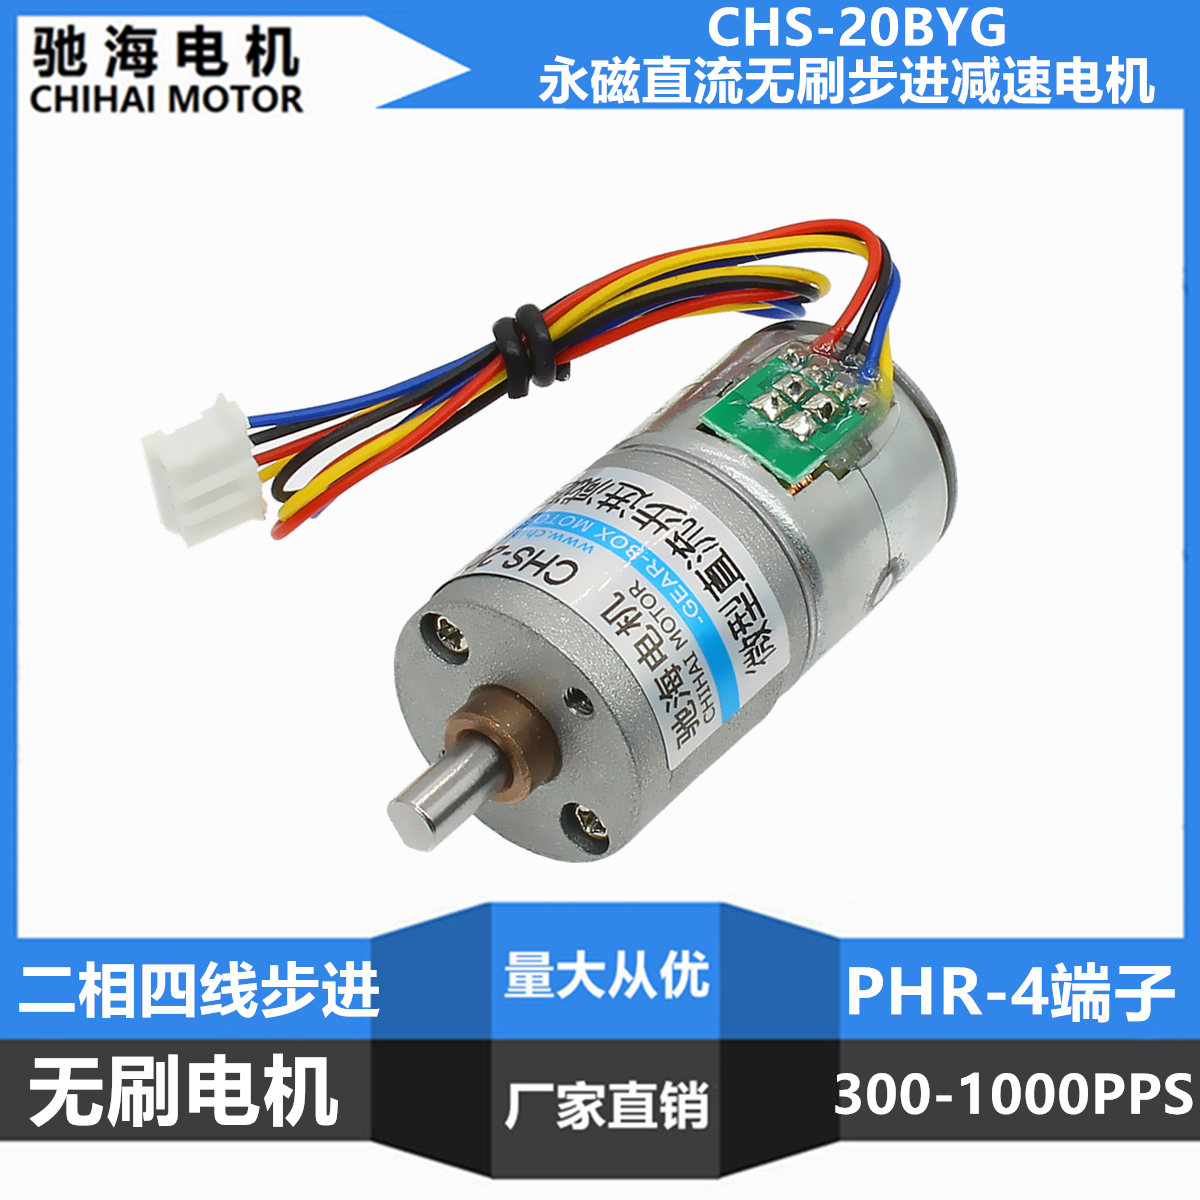 Usd 1558 Chi Hai Motor 2 Phase 4 Wire Diameter 20mm Miniature Stepper Diagram Reducer 20by All